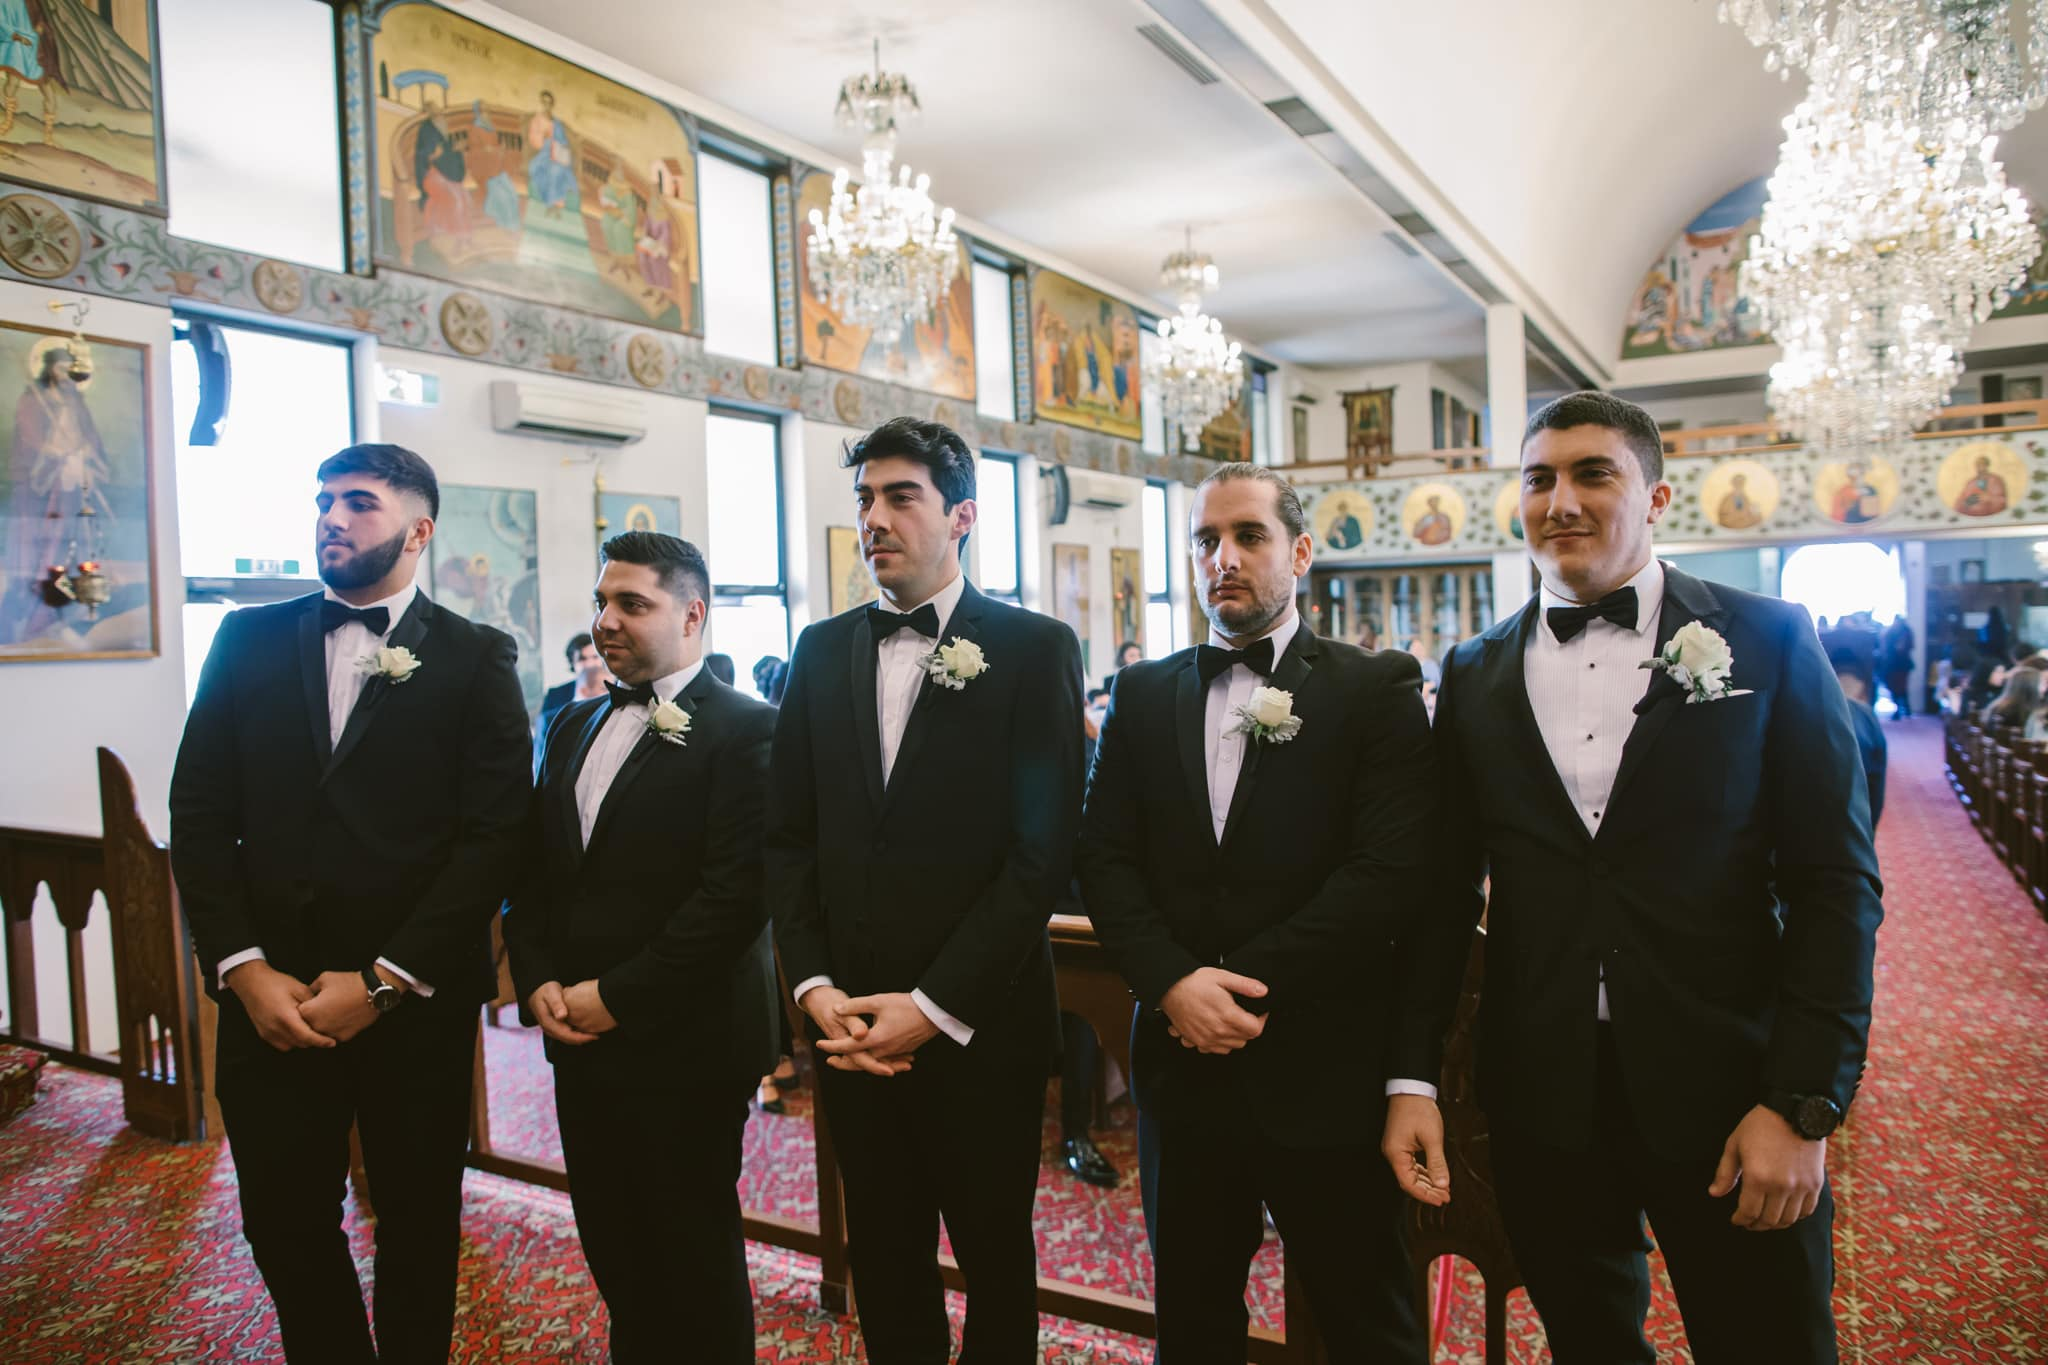 groom and groomsmen waiting for bride in church - greek weddings